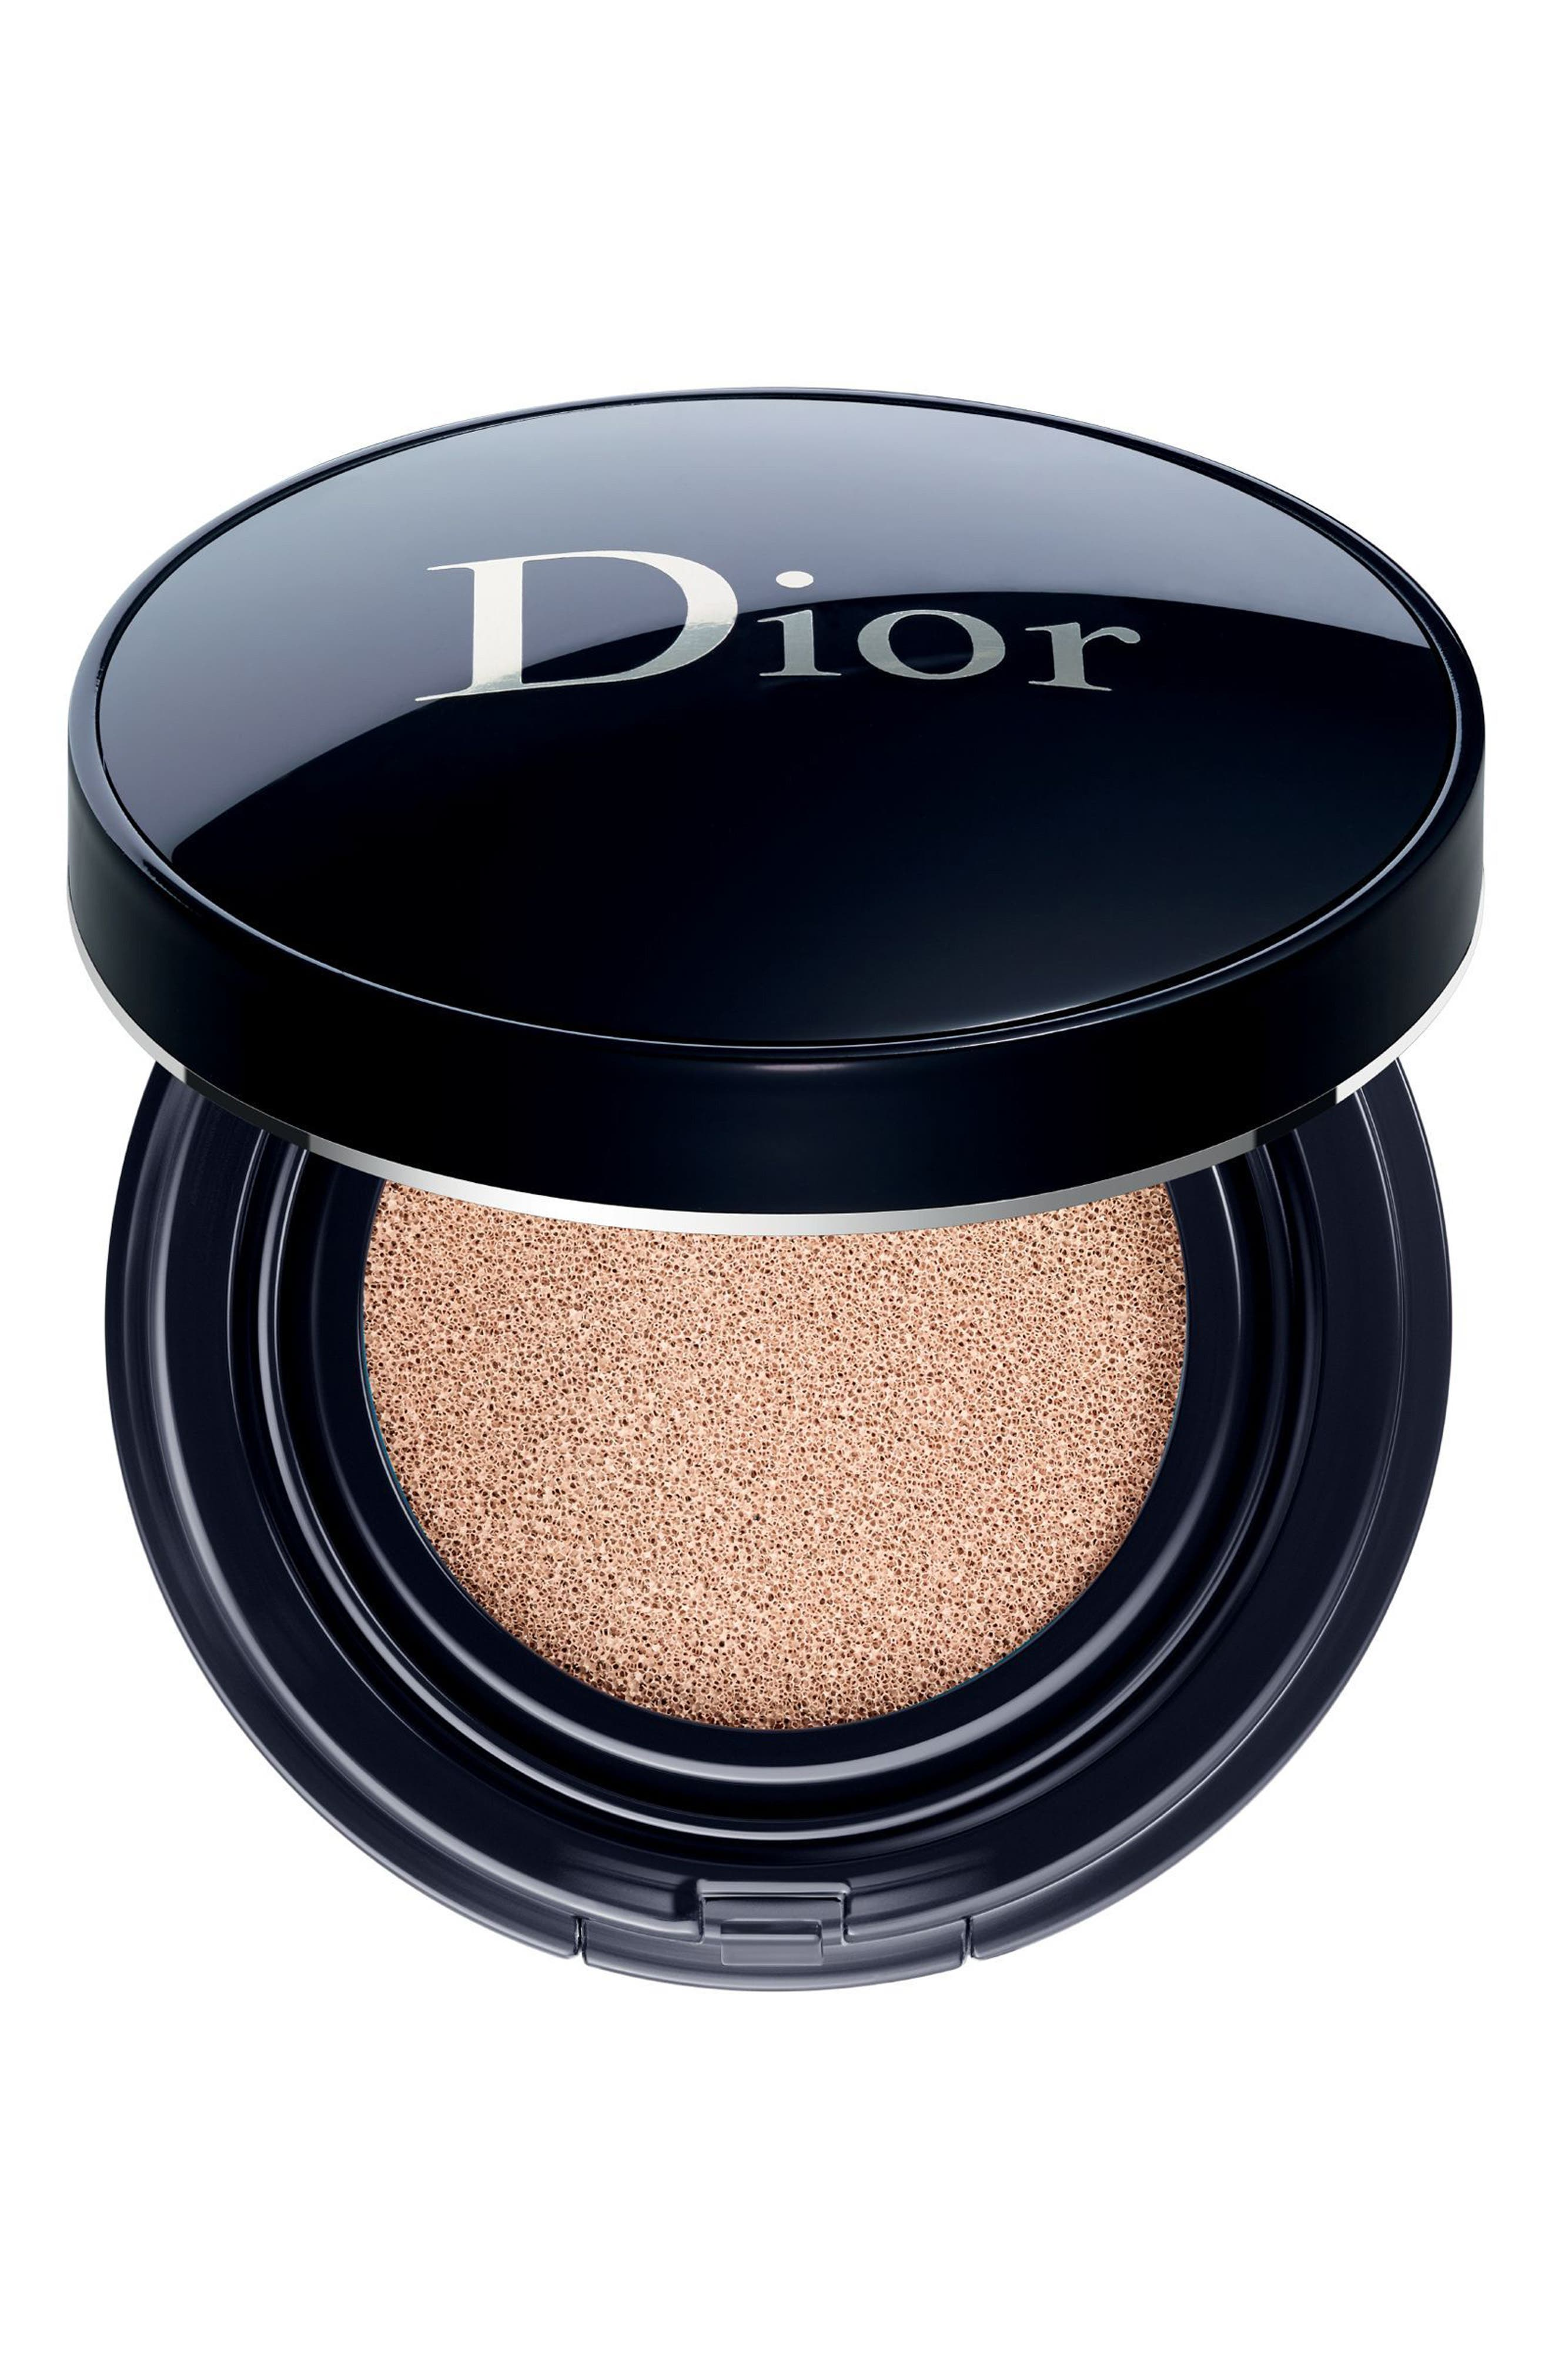 Diorskin Forever Perfect Cushion Foundation Broad Spectrum SPF 35,                             Main thumbnail 1, color,                             020 Light Beige